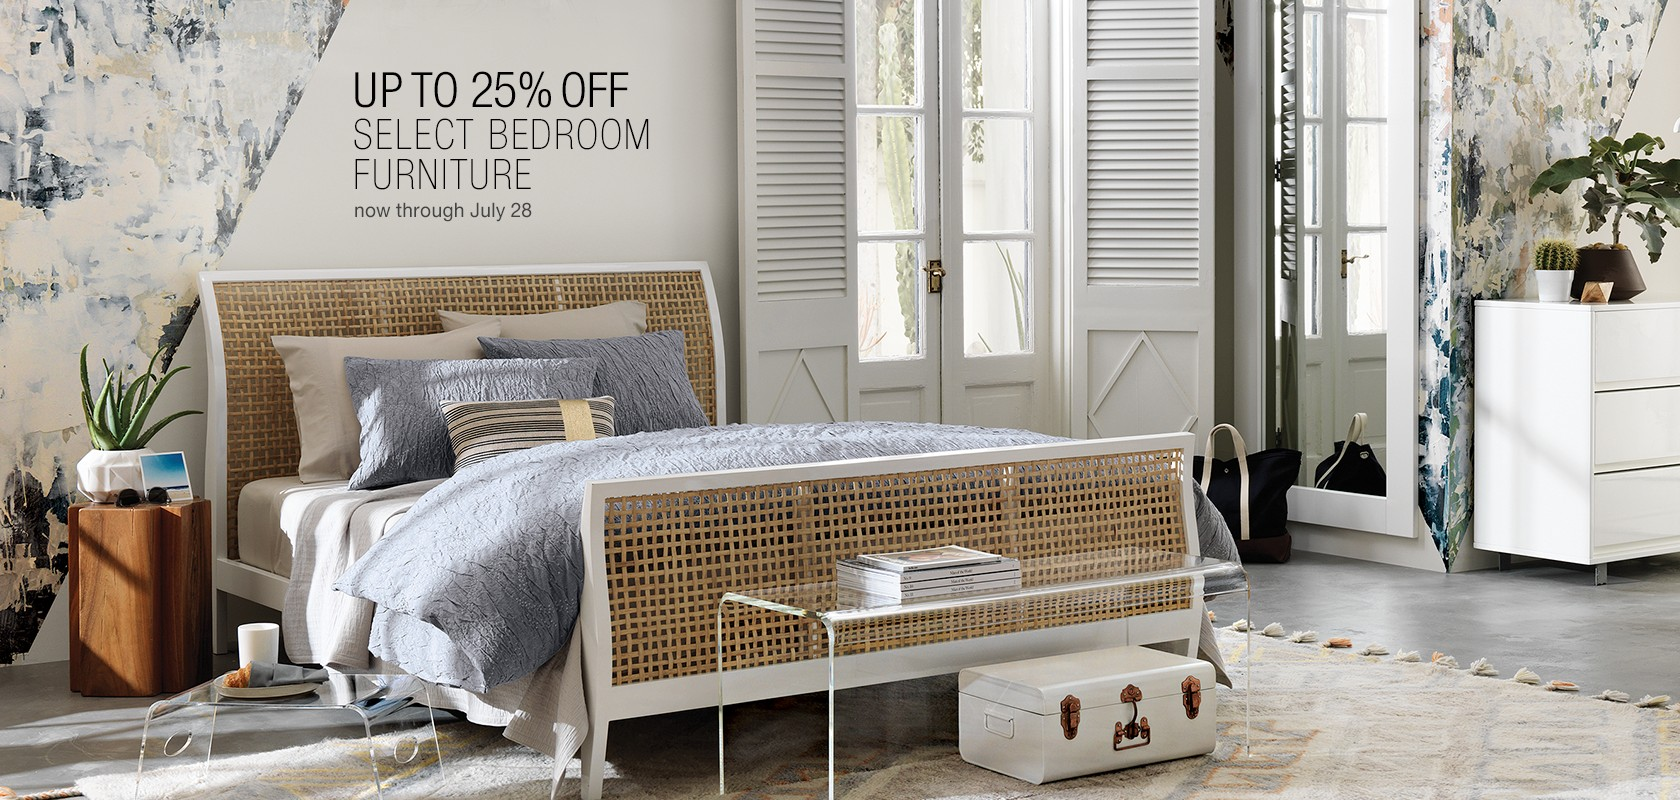 up to 25% off select bedroom furniture. now through July 28